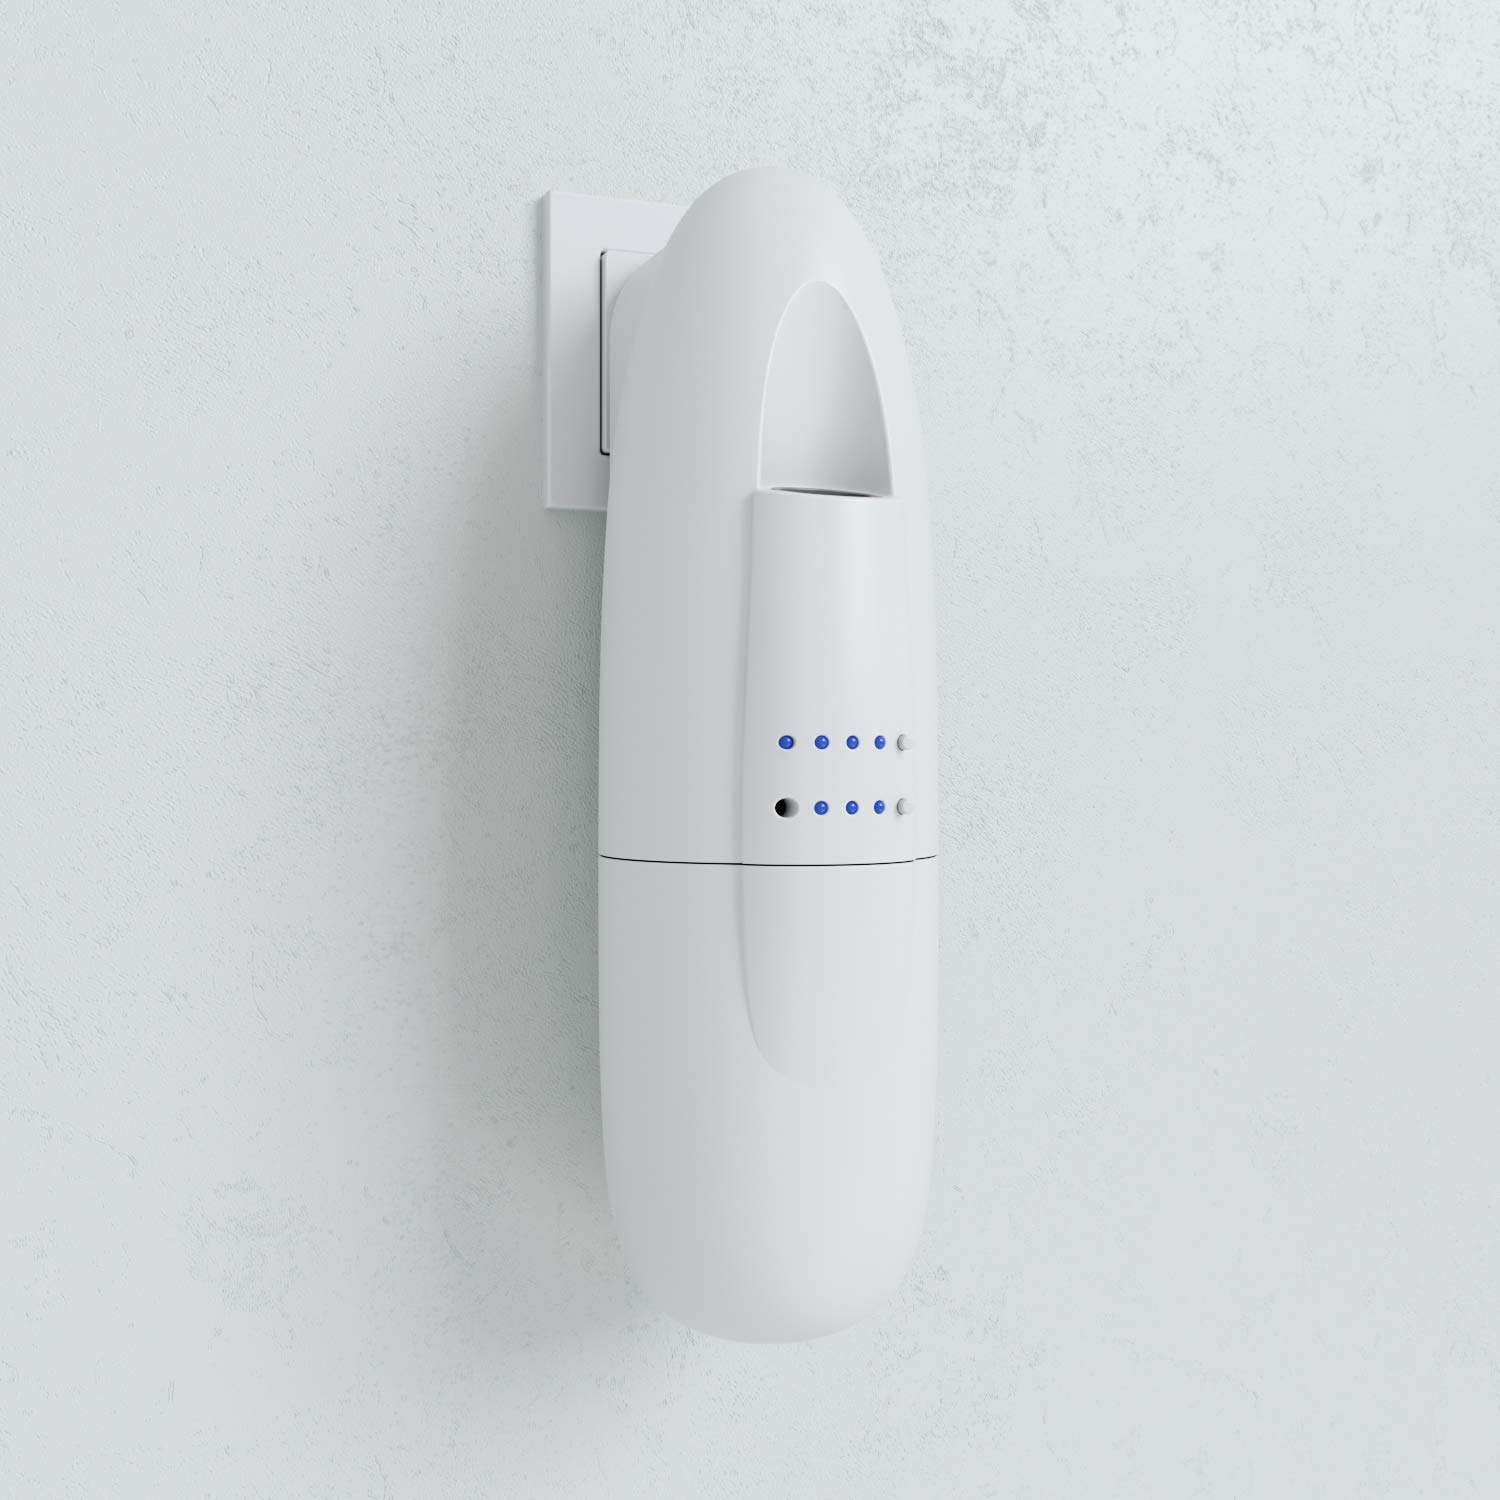 Aromasters Smart Aroma Scent Diffuser with Complimentary Oil Bottle - Wall Plugin Scent System, Portable Medium Space Home Essential Oil Diffuser